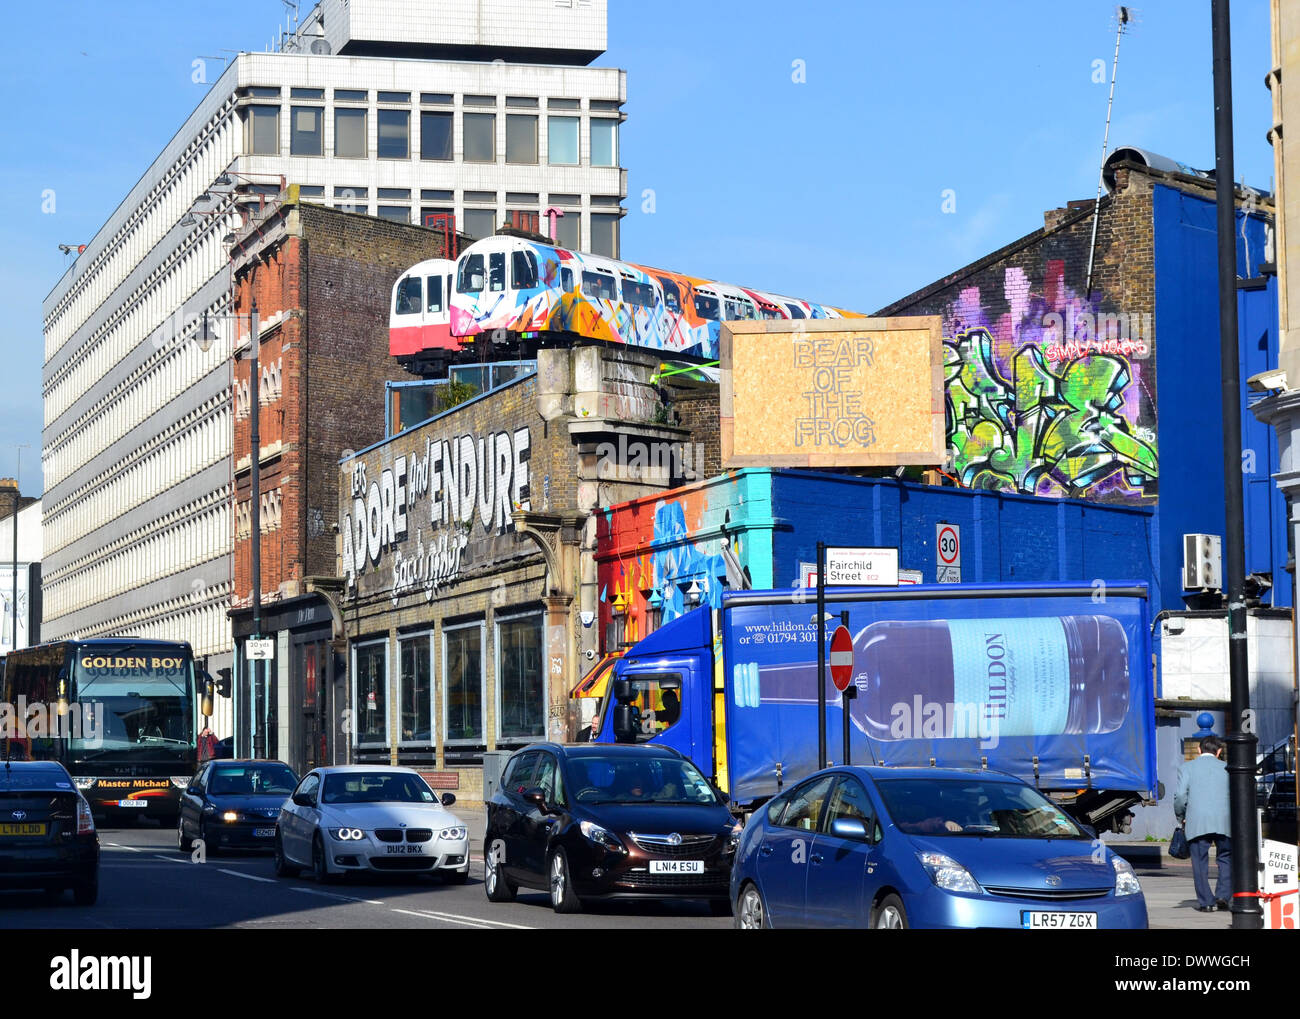 Taxi outside a building in Shoreditch, east London - Stock Image